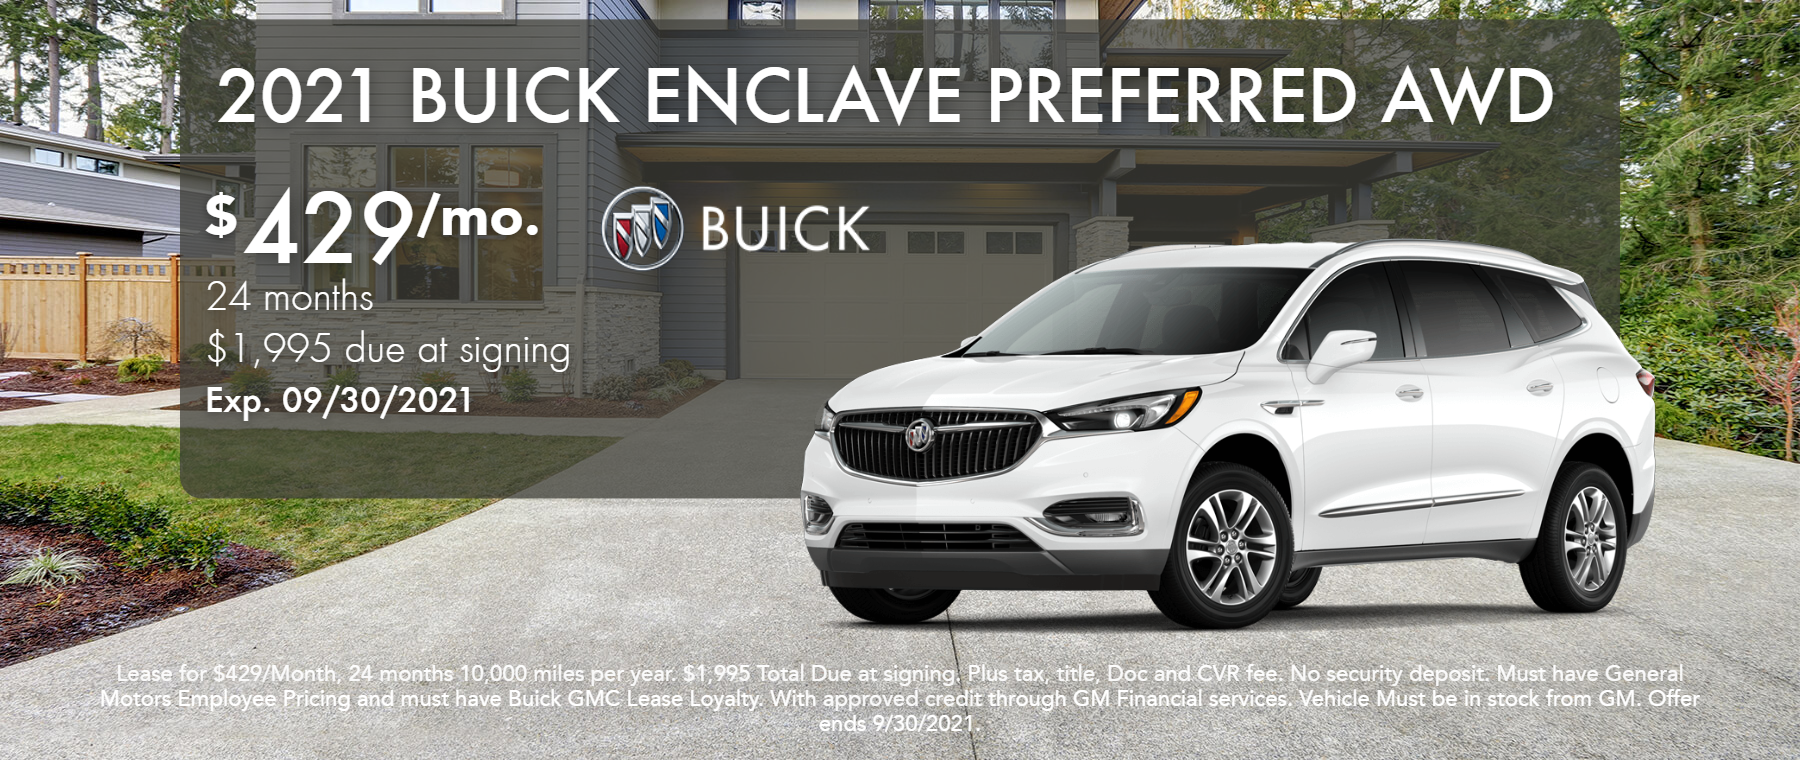 2021_Buick_Enclave_Preferred AWD_Thu Sep 02 2021 12_37_34 GMT-0400 (Eastern Daylight Time)